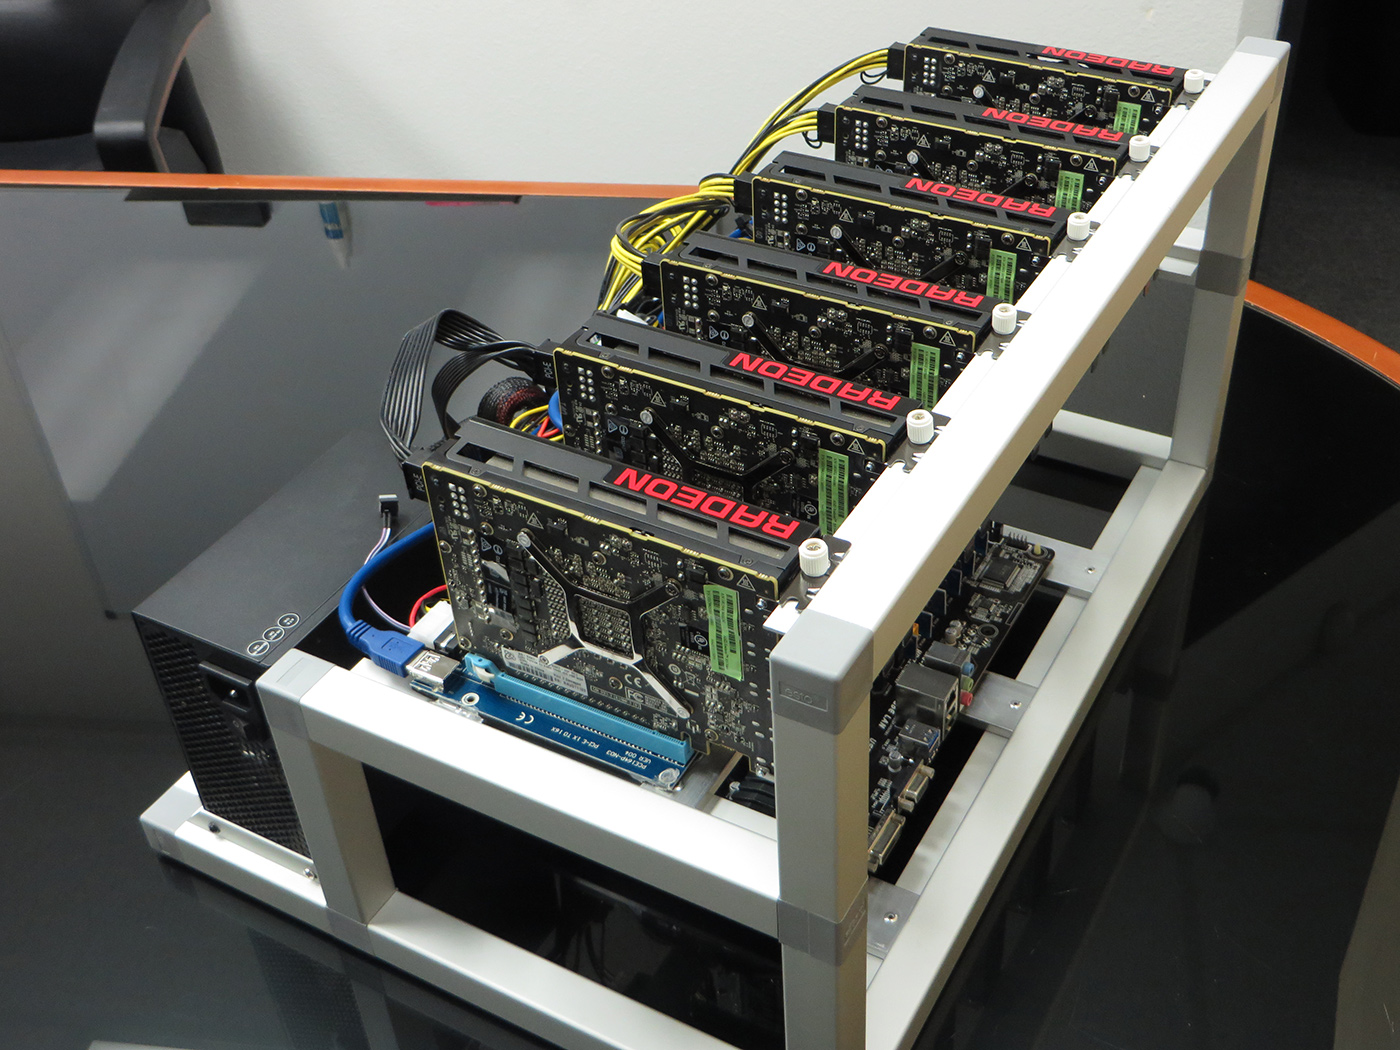 Rig Bitcoin Termurah Pemukul 2018 Rak Untuk Mining Best Malaysia Information For Ilheus Brazil We Have The Complete Source Info Resources